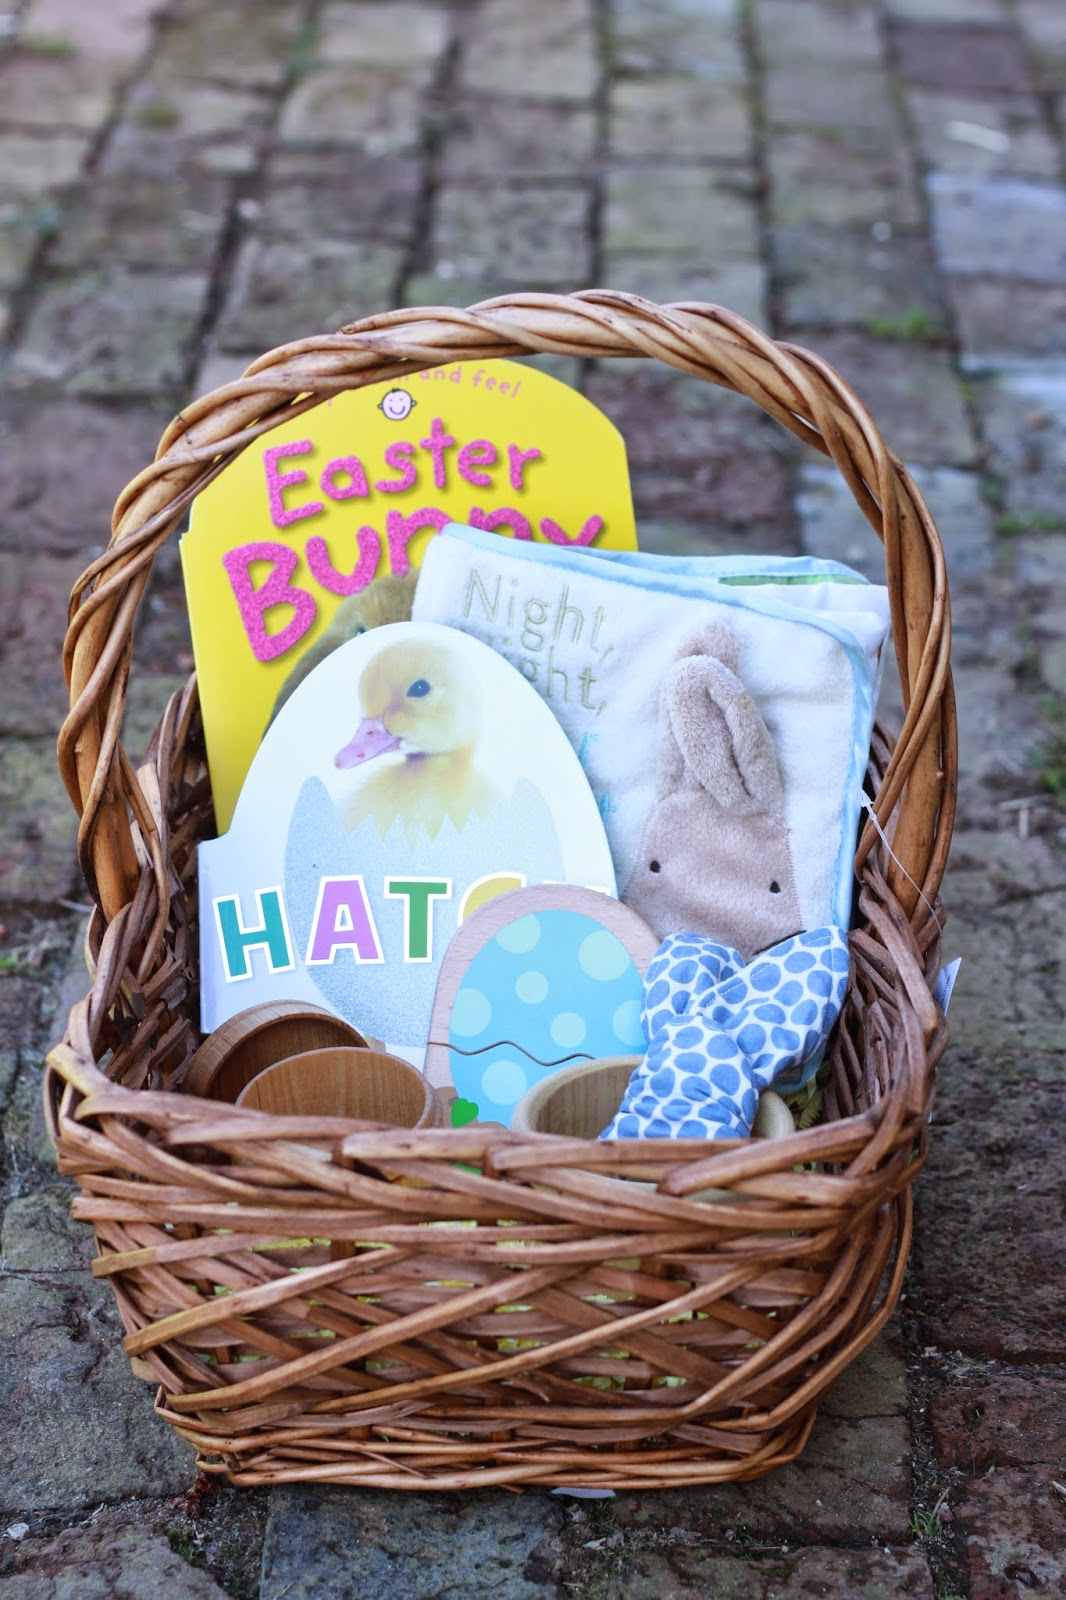 Life with the ladniers easter baskets 2015 3 year old and 6 months logans basket 6 months old negle Gallery